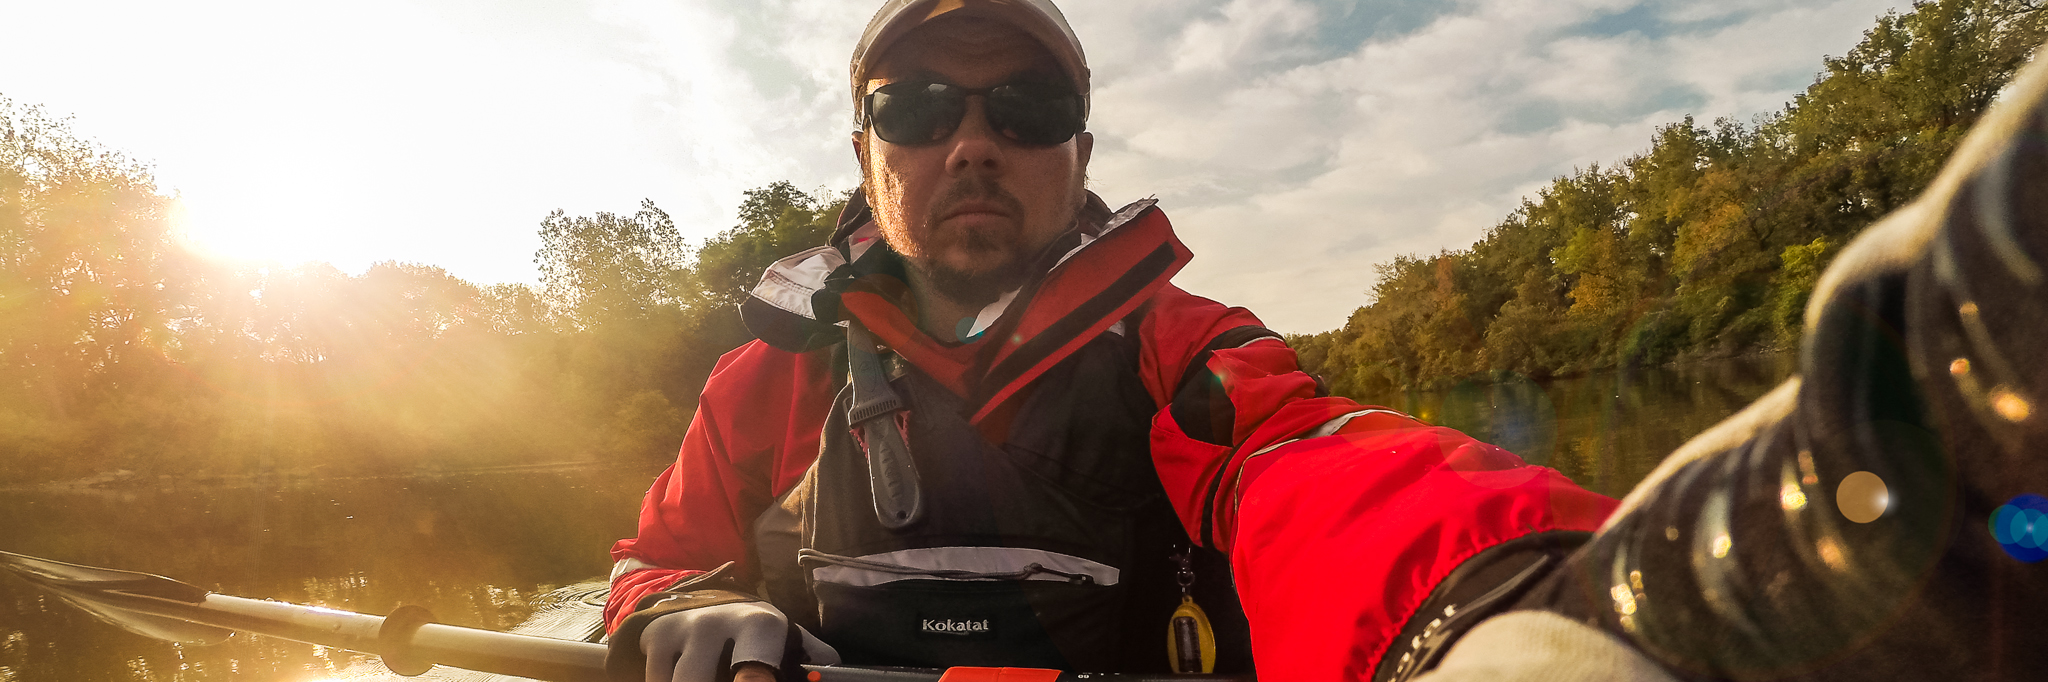 Chip MacAlpine, Erie Canal, Kayaking, Sunset